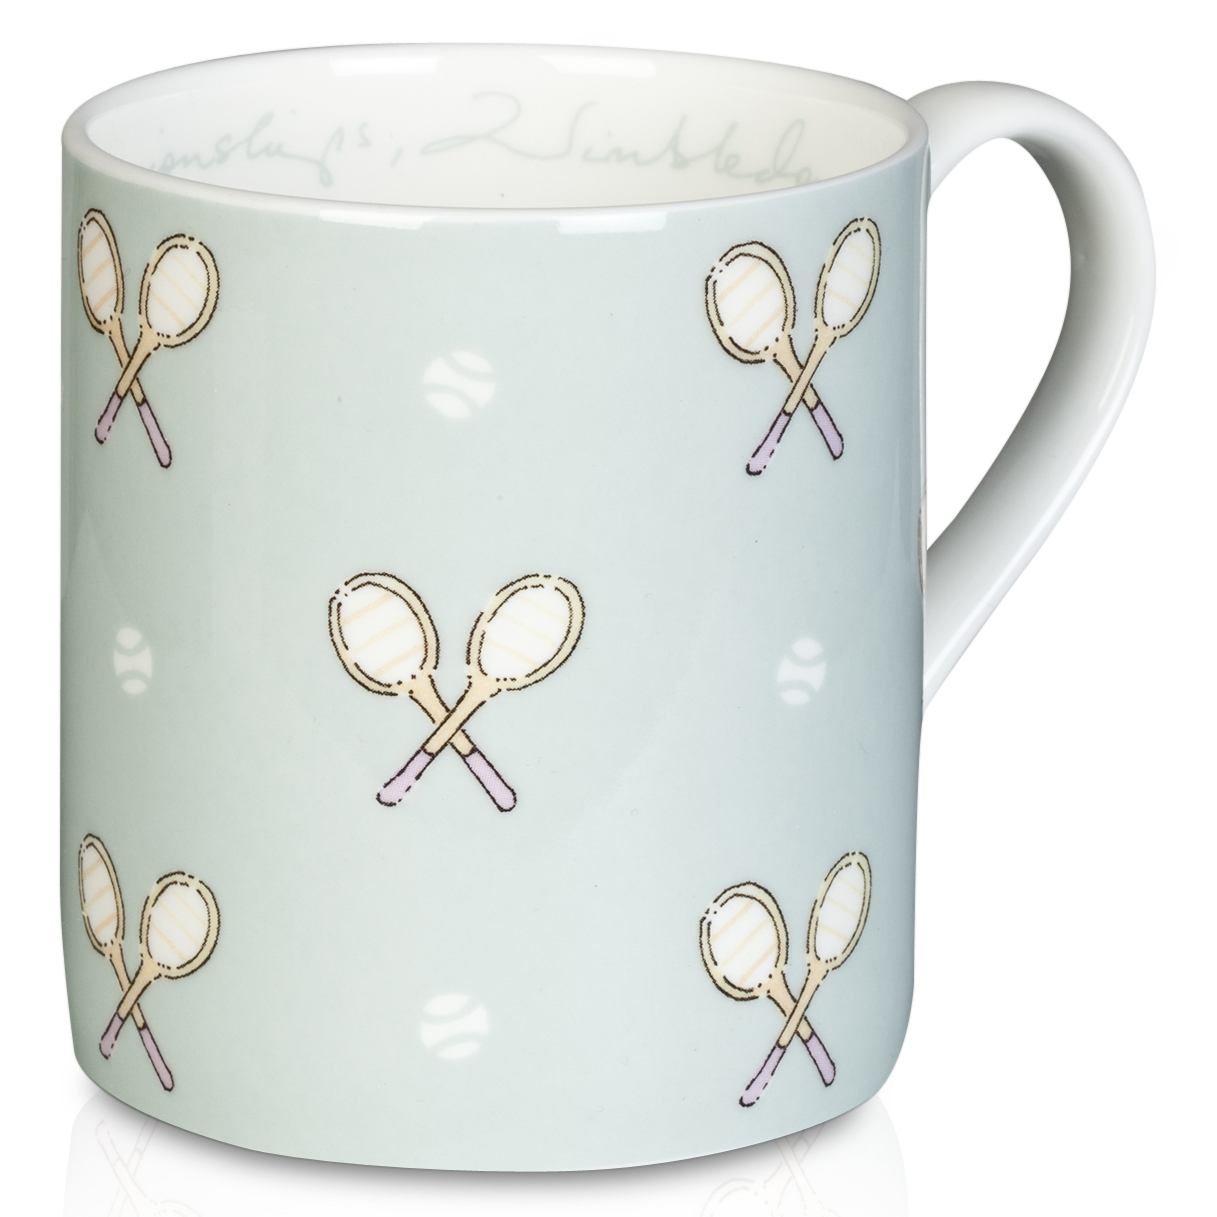 Wimbledon Mug With Classic Racket Design - Duck Egg